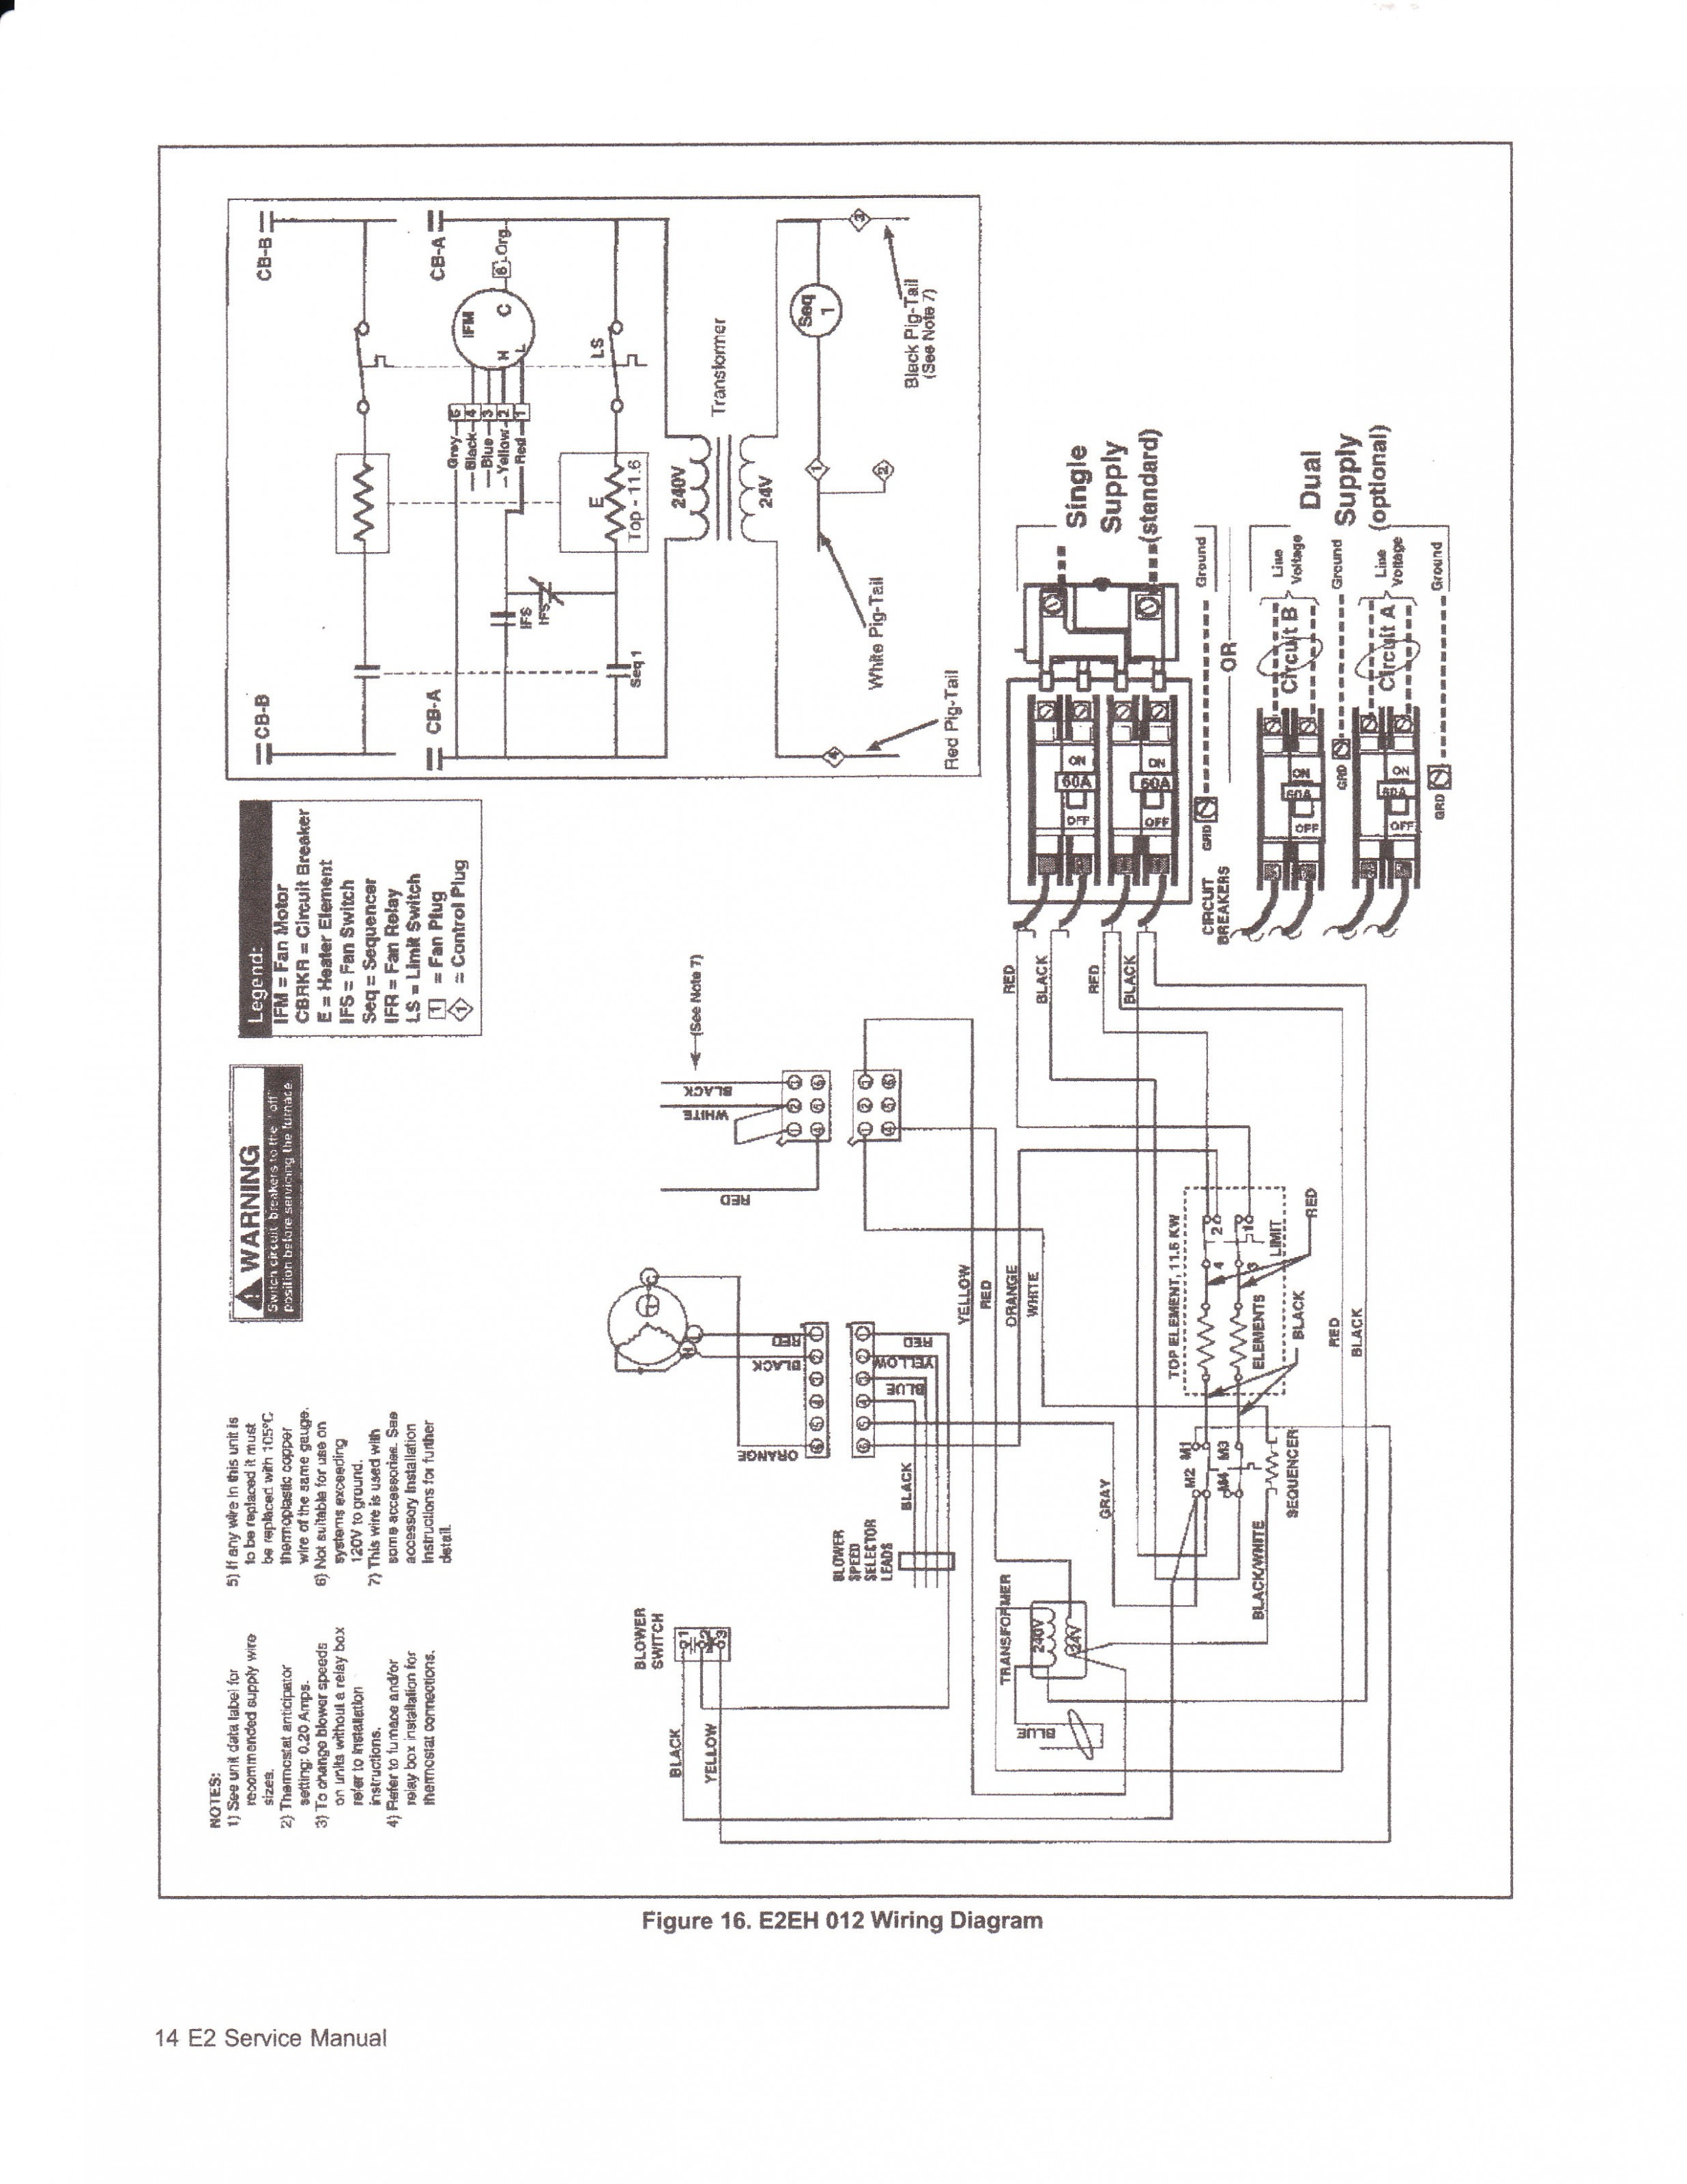 Evcon Thermostat Wiring Diagram | Wiring Diagram on